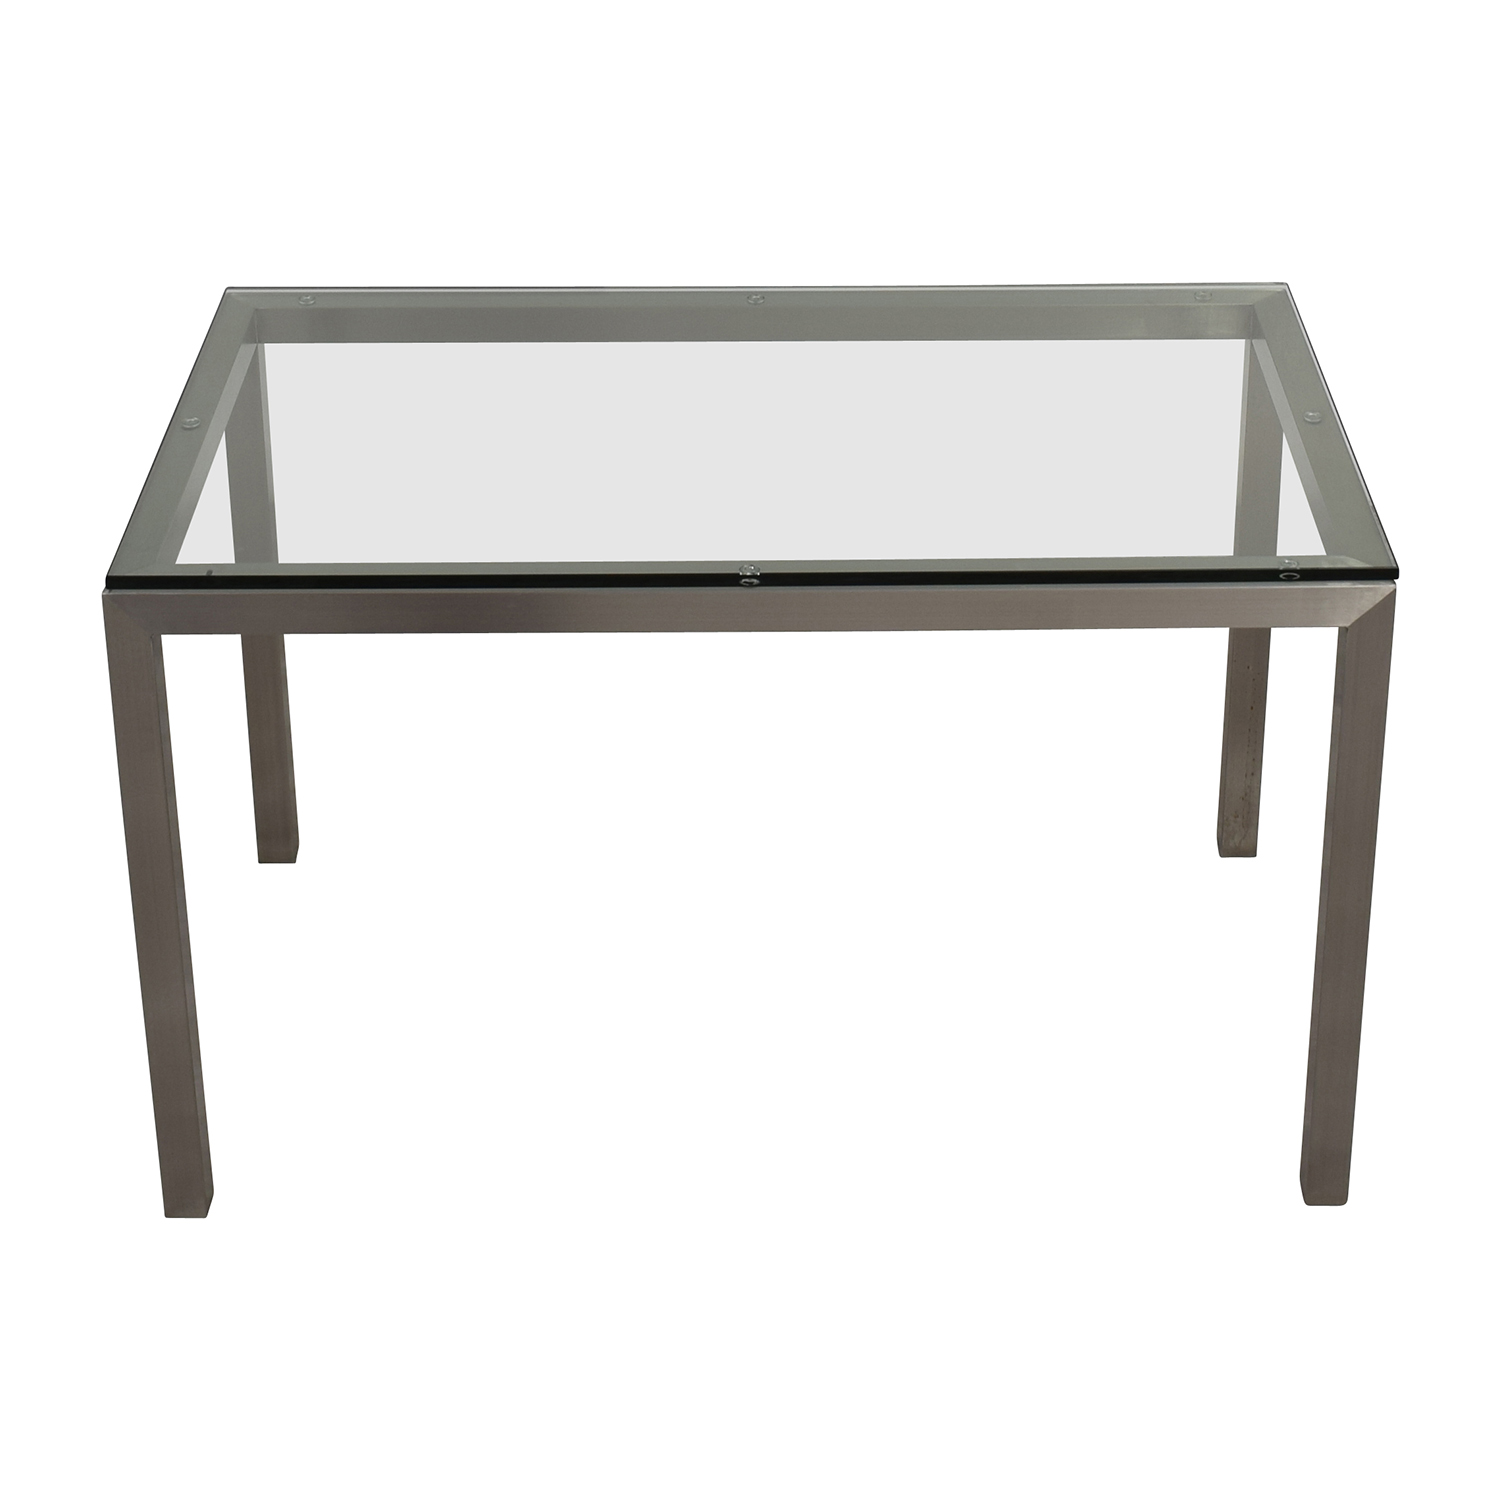 Crate And Barrel Crate U0026 Barrel Glass And Stainless Steel Dining Table Nj